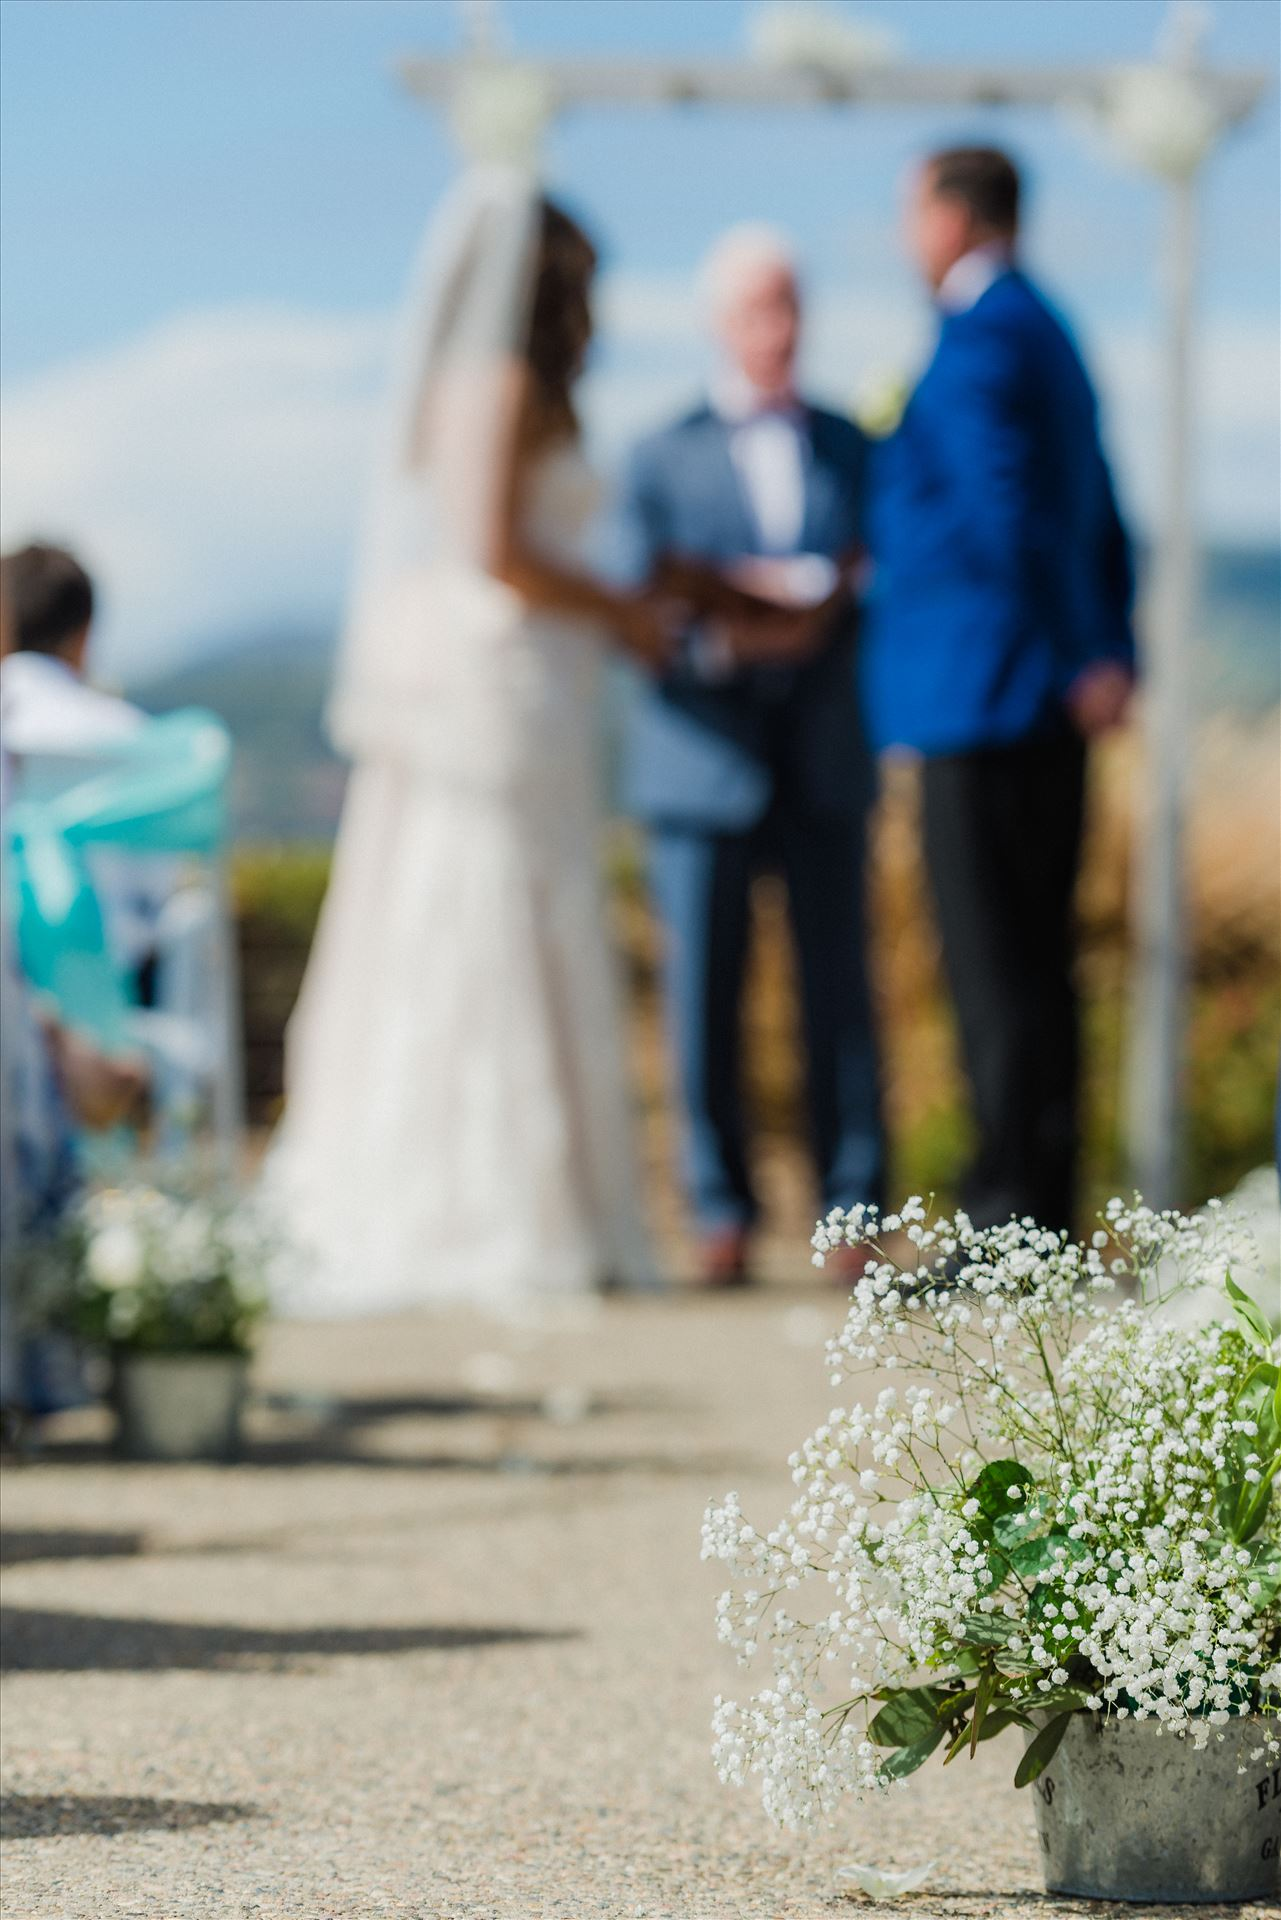 Candy and Christopher 17 Wedding at Dolphin Bay Resort and Spa in Shell Beach, California by Sarah Williams of Mirror's Edge Photography, a San Luis Obispo County Wedding Photographer. Down the aisle at Spyglass by Sarah Williams